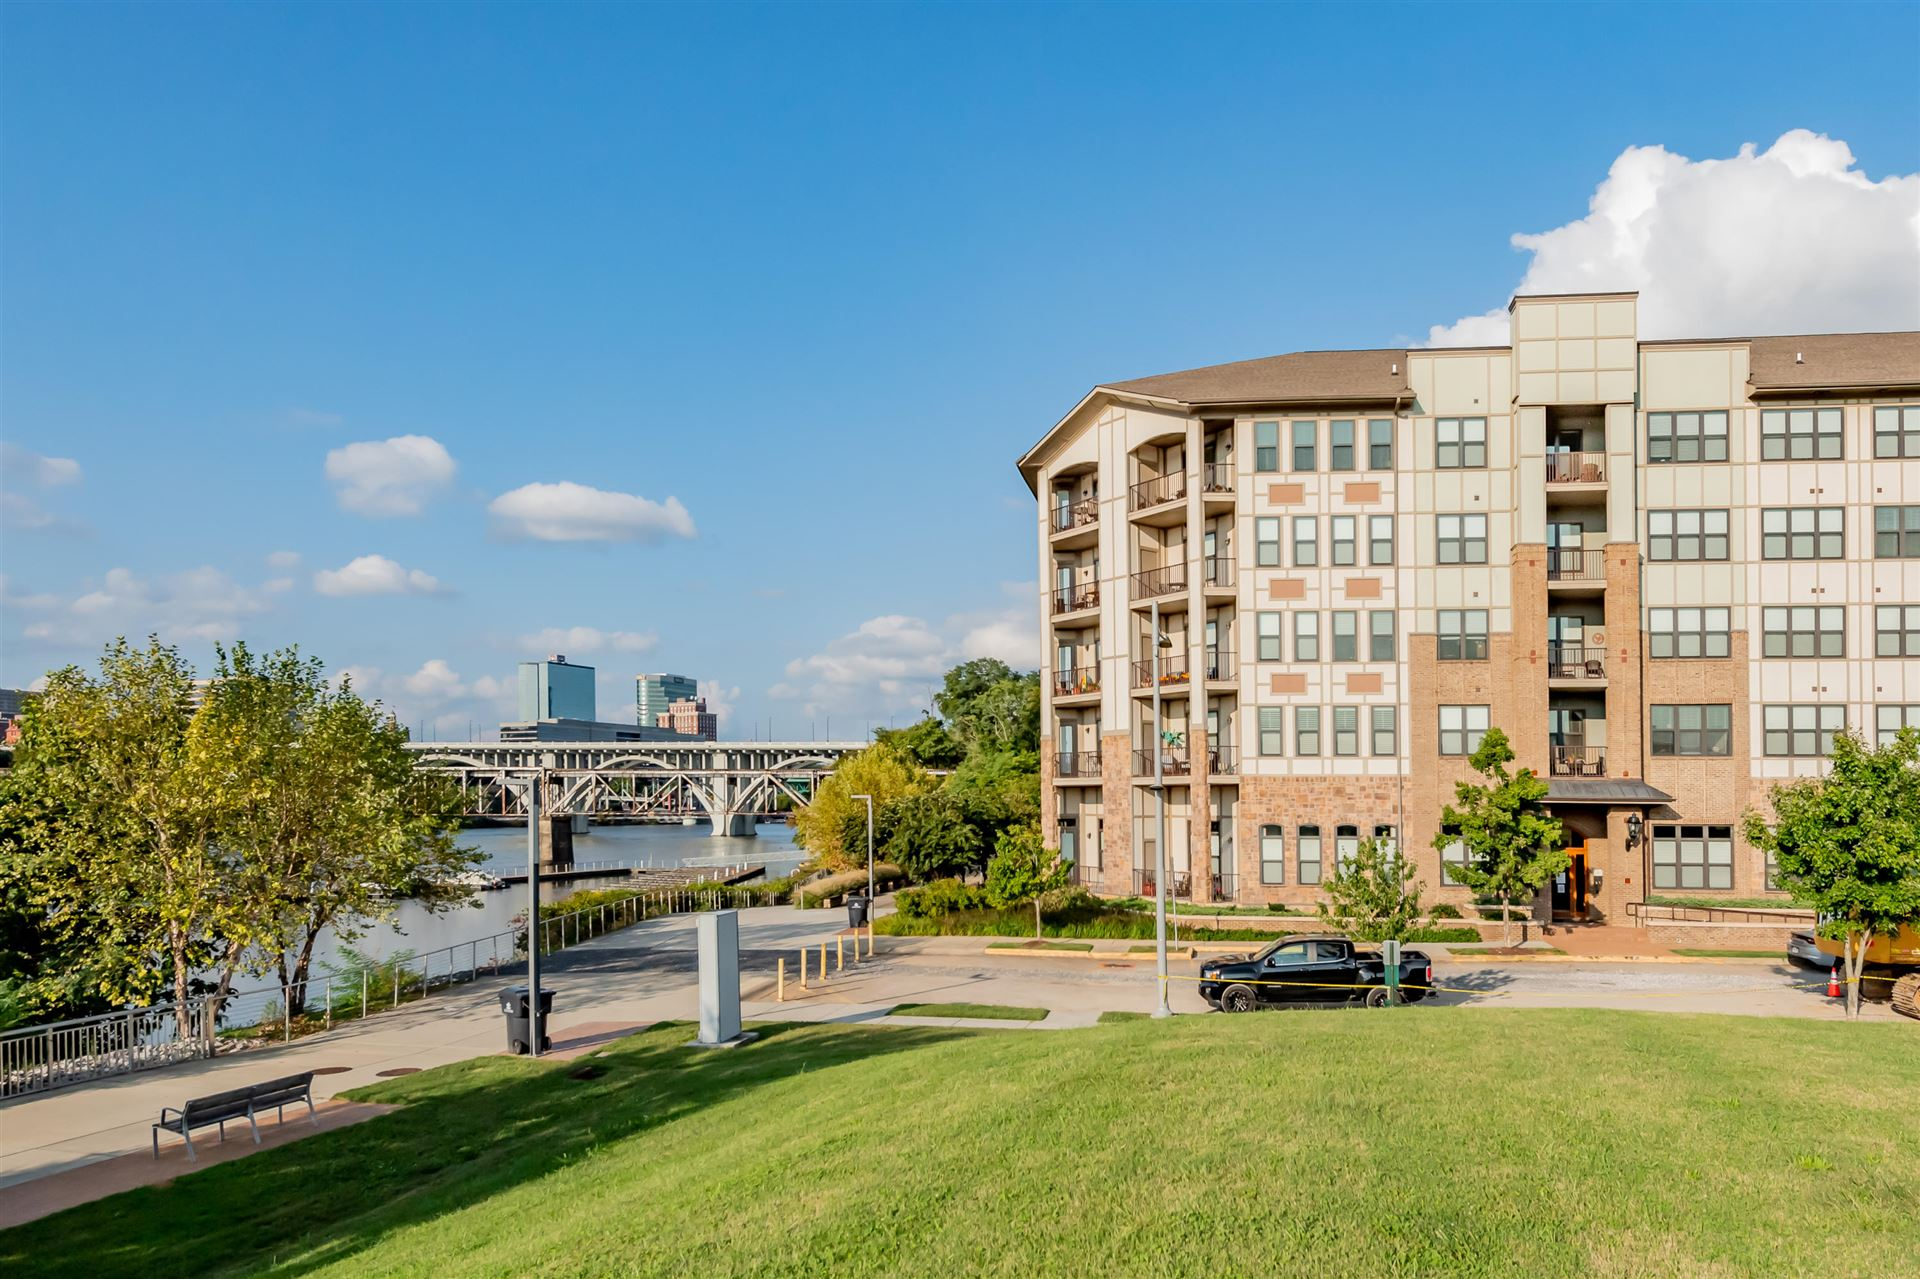 Photo for 445 W Blount Ave #102, Knoxville, TN 37920 (MLS # 1131877)